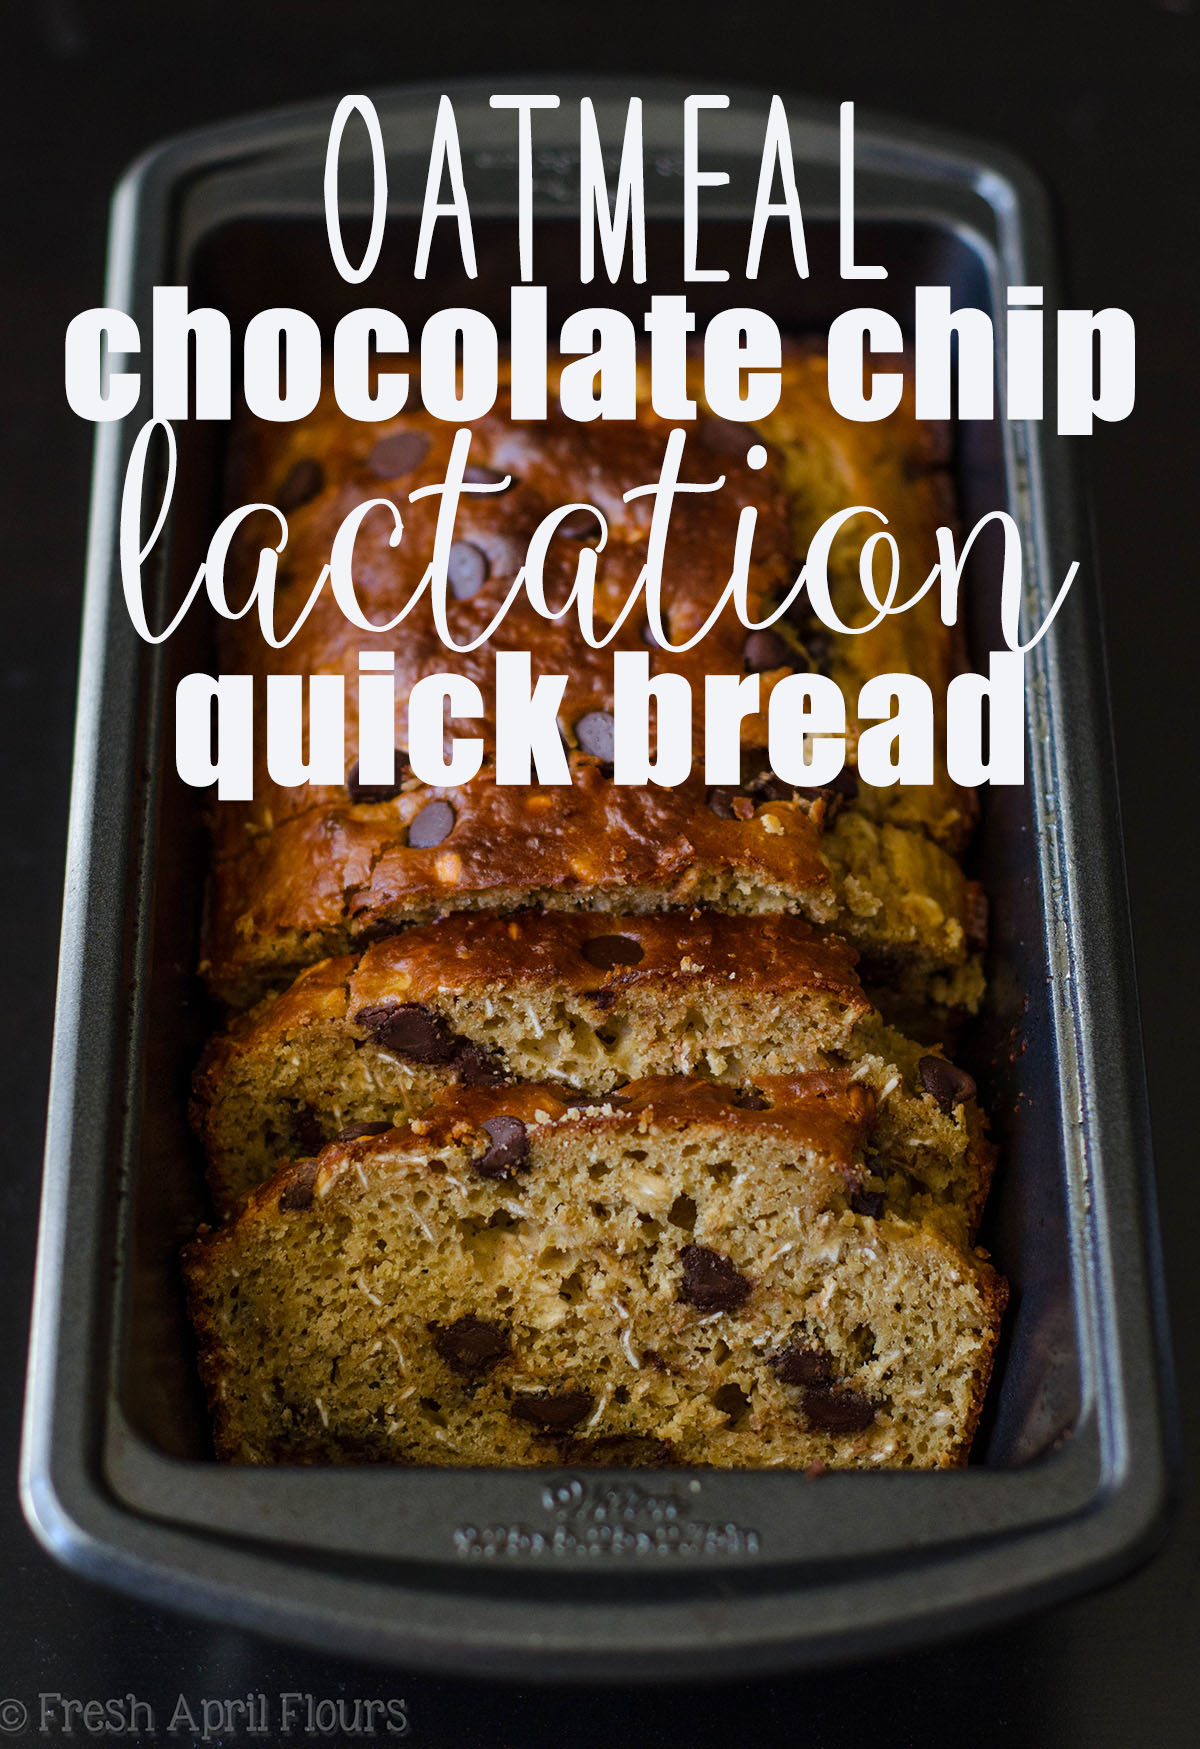 Oatmeal Chocolate Chip Lactation Quick Bread: An easy, hearty oatmeal quick bread filled with plenty of galactagogues to encourage milk production in breastfeeding mothers.